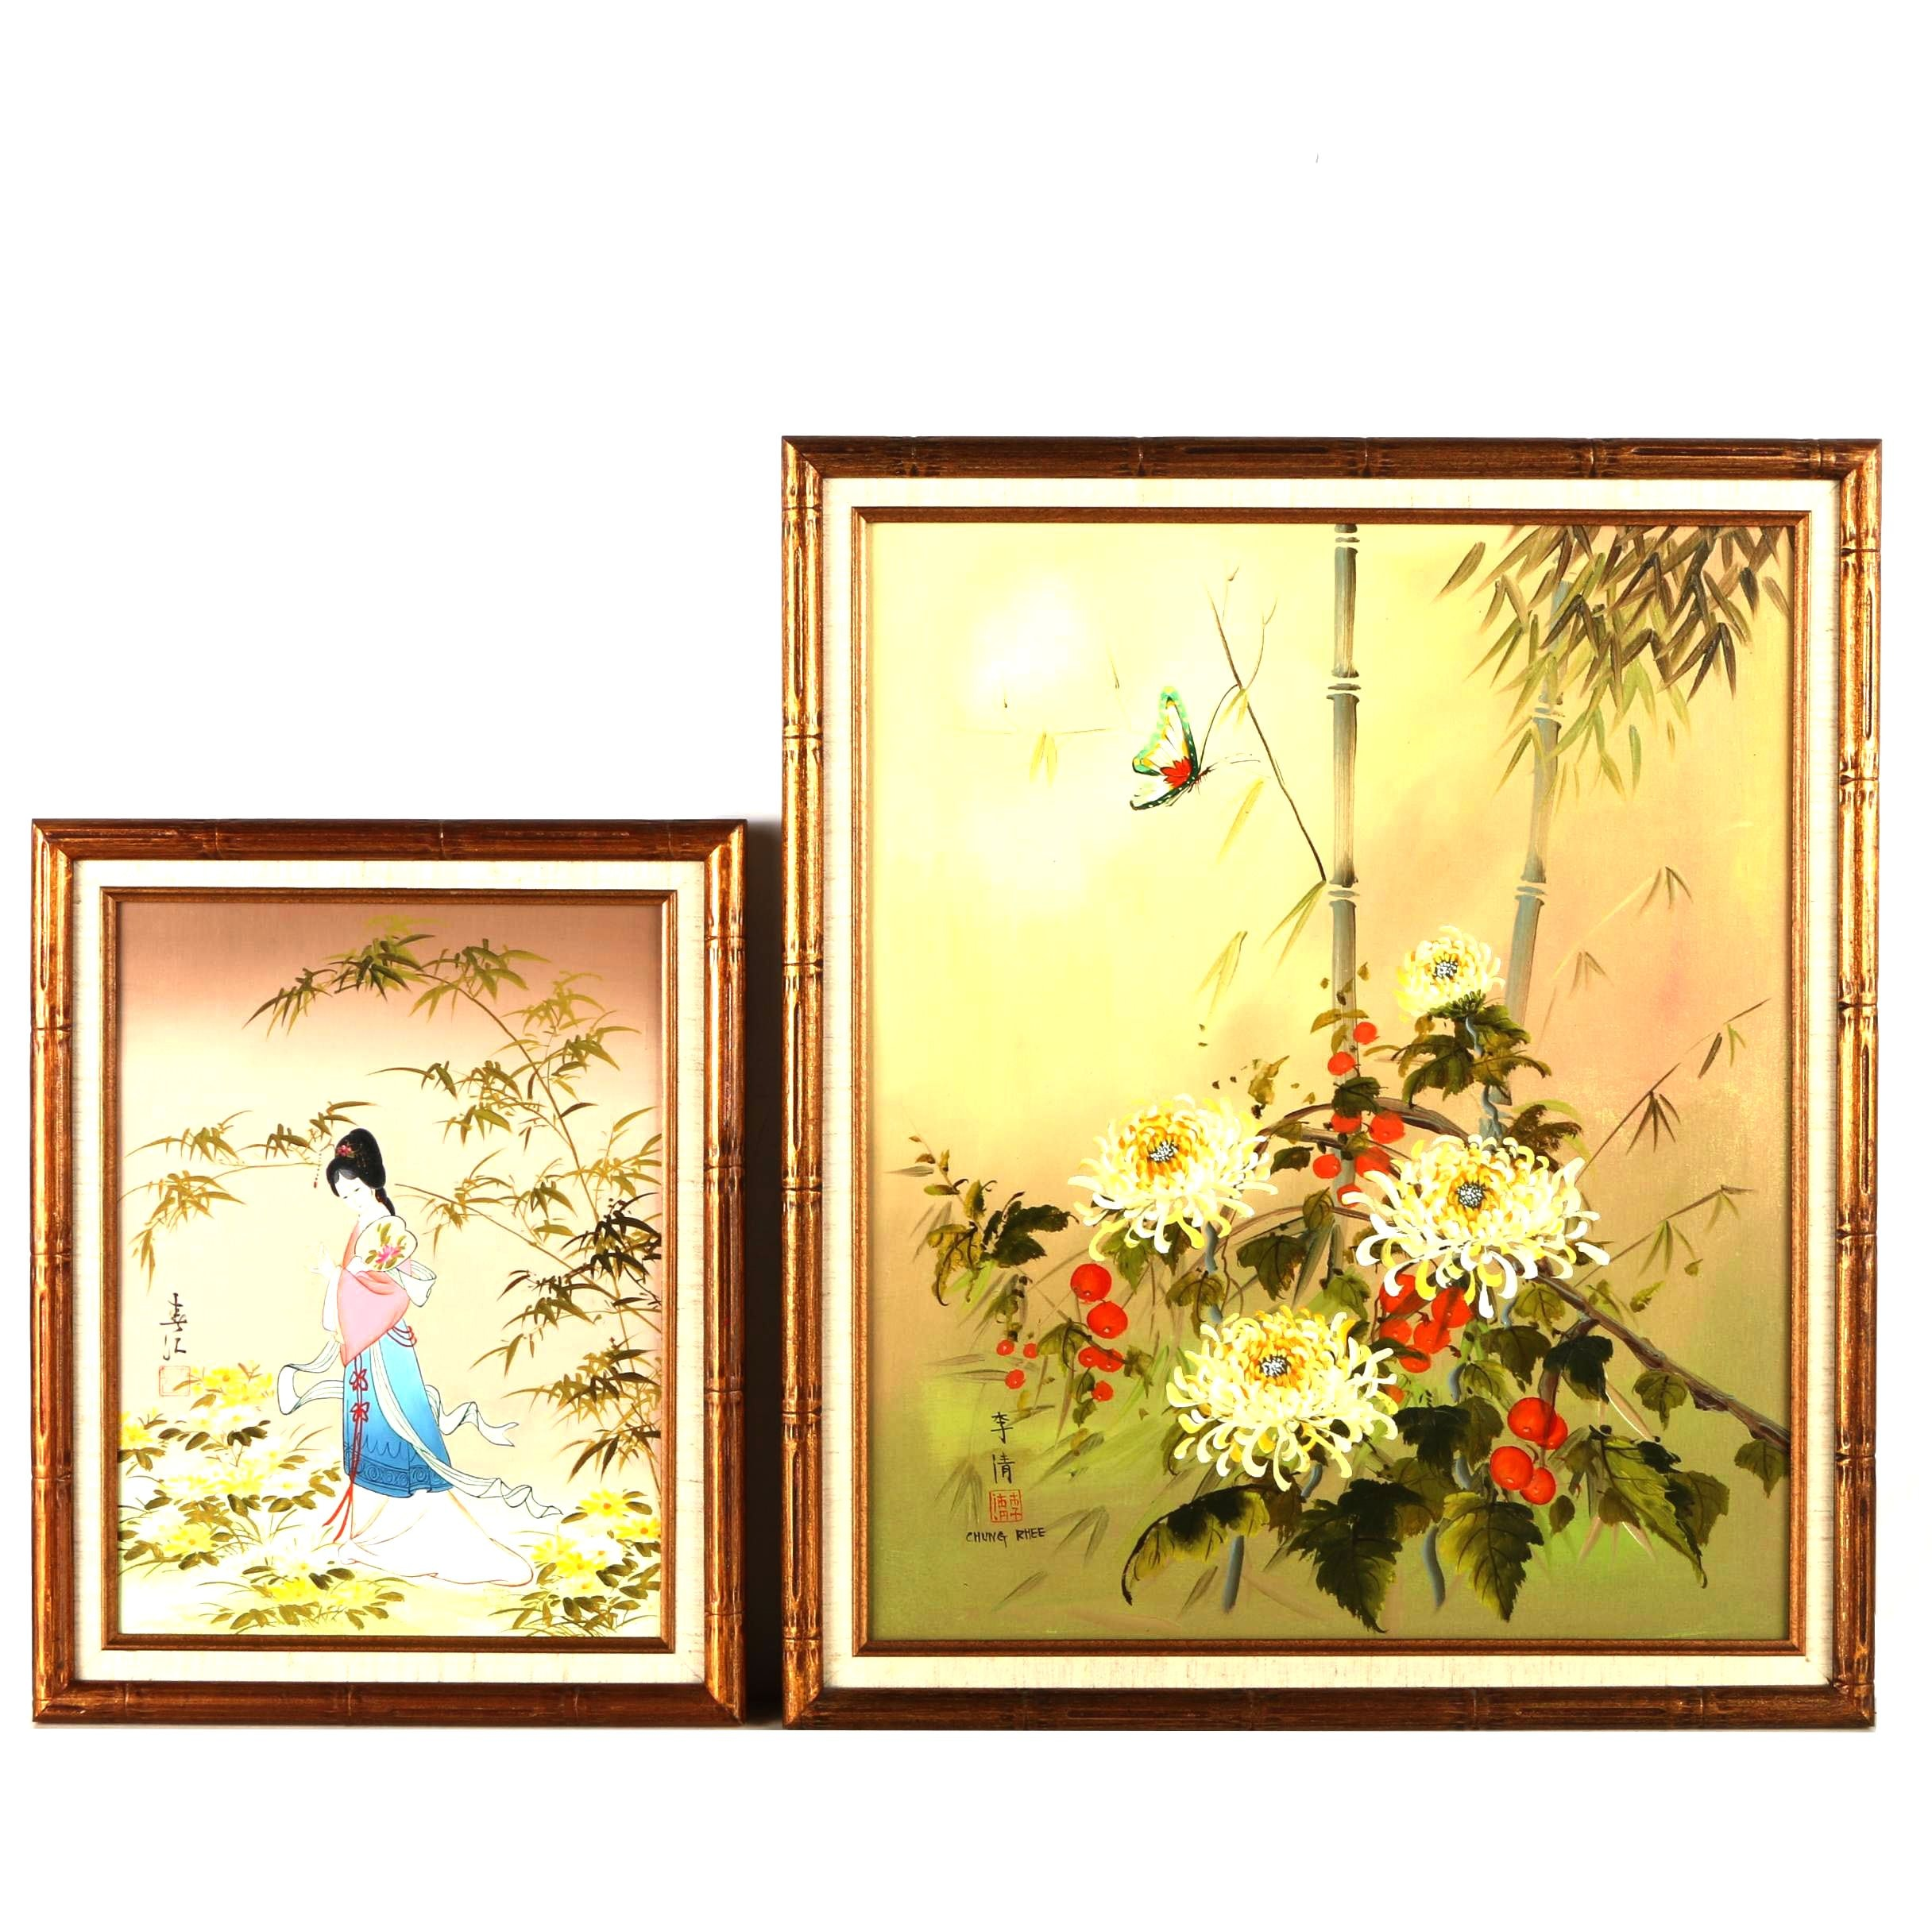 Chinese Oil Paintings on Canvas Portrait and Floral Still Life